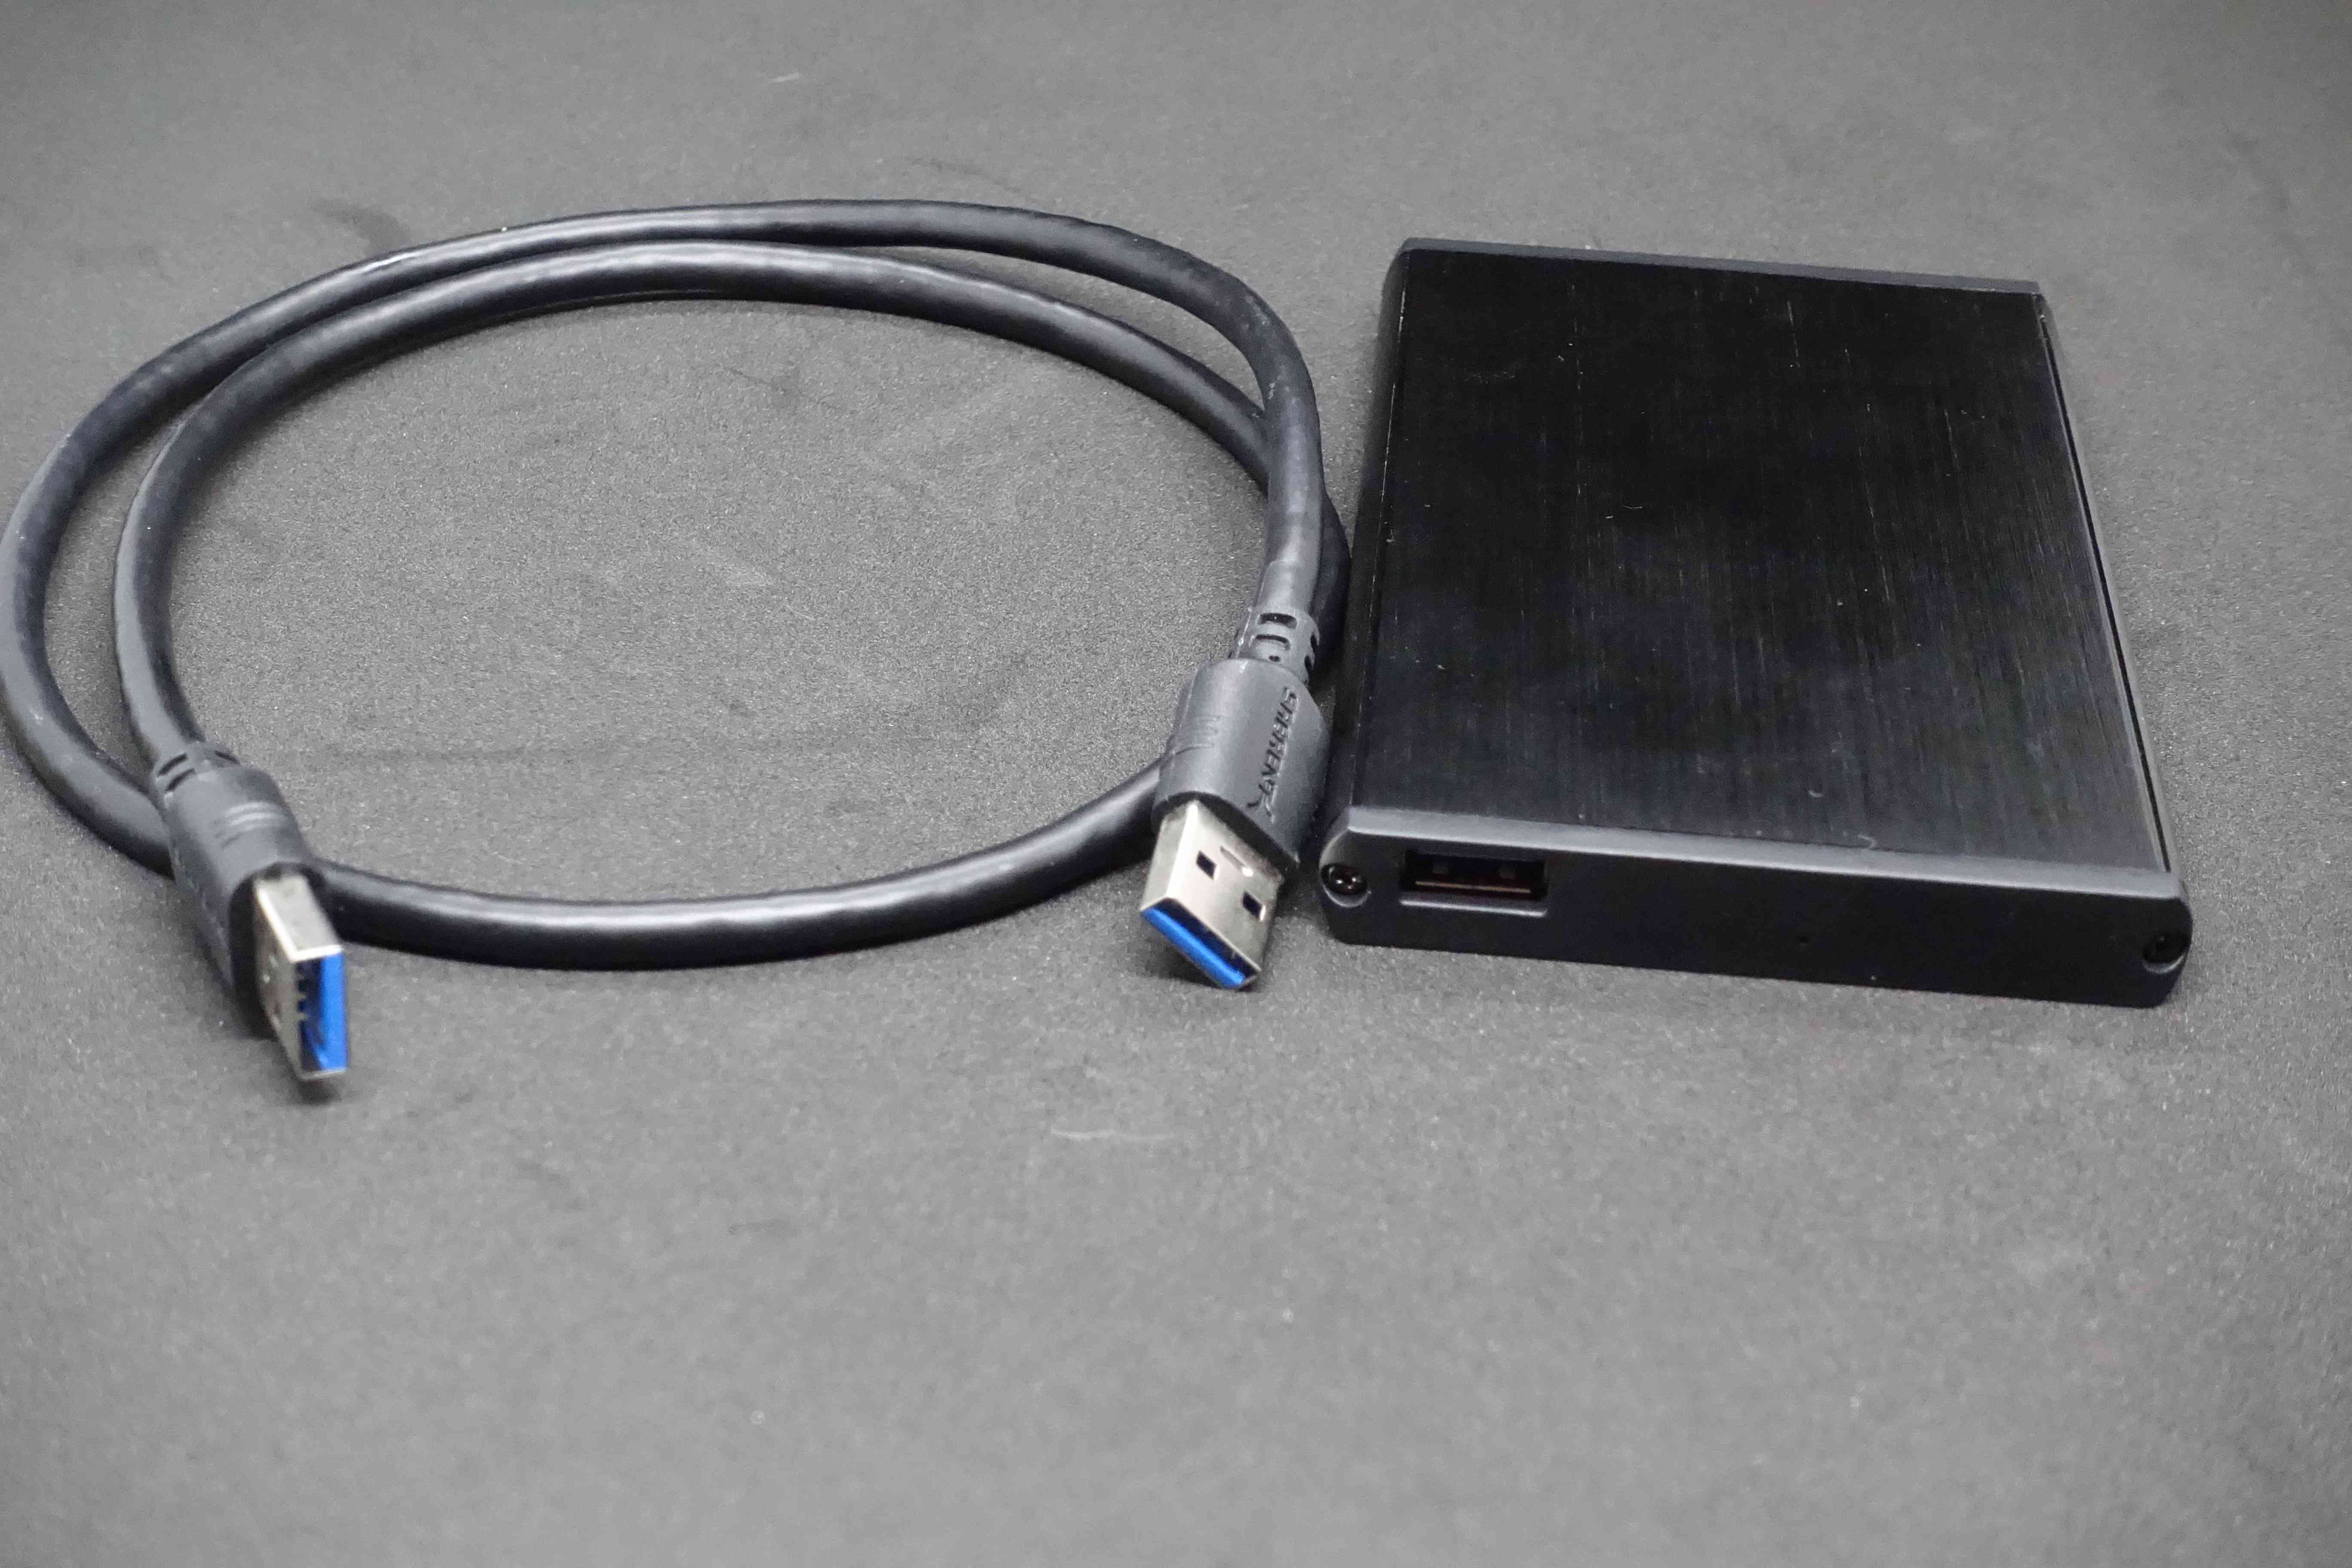 An external hard drive with a USB cable.